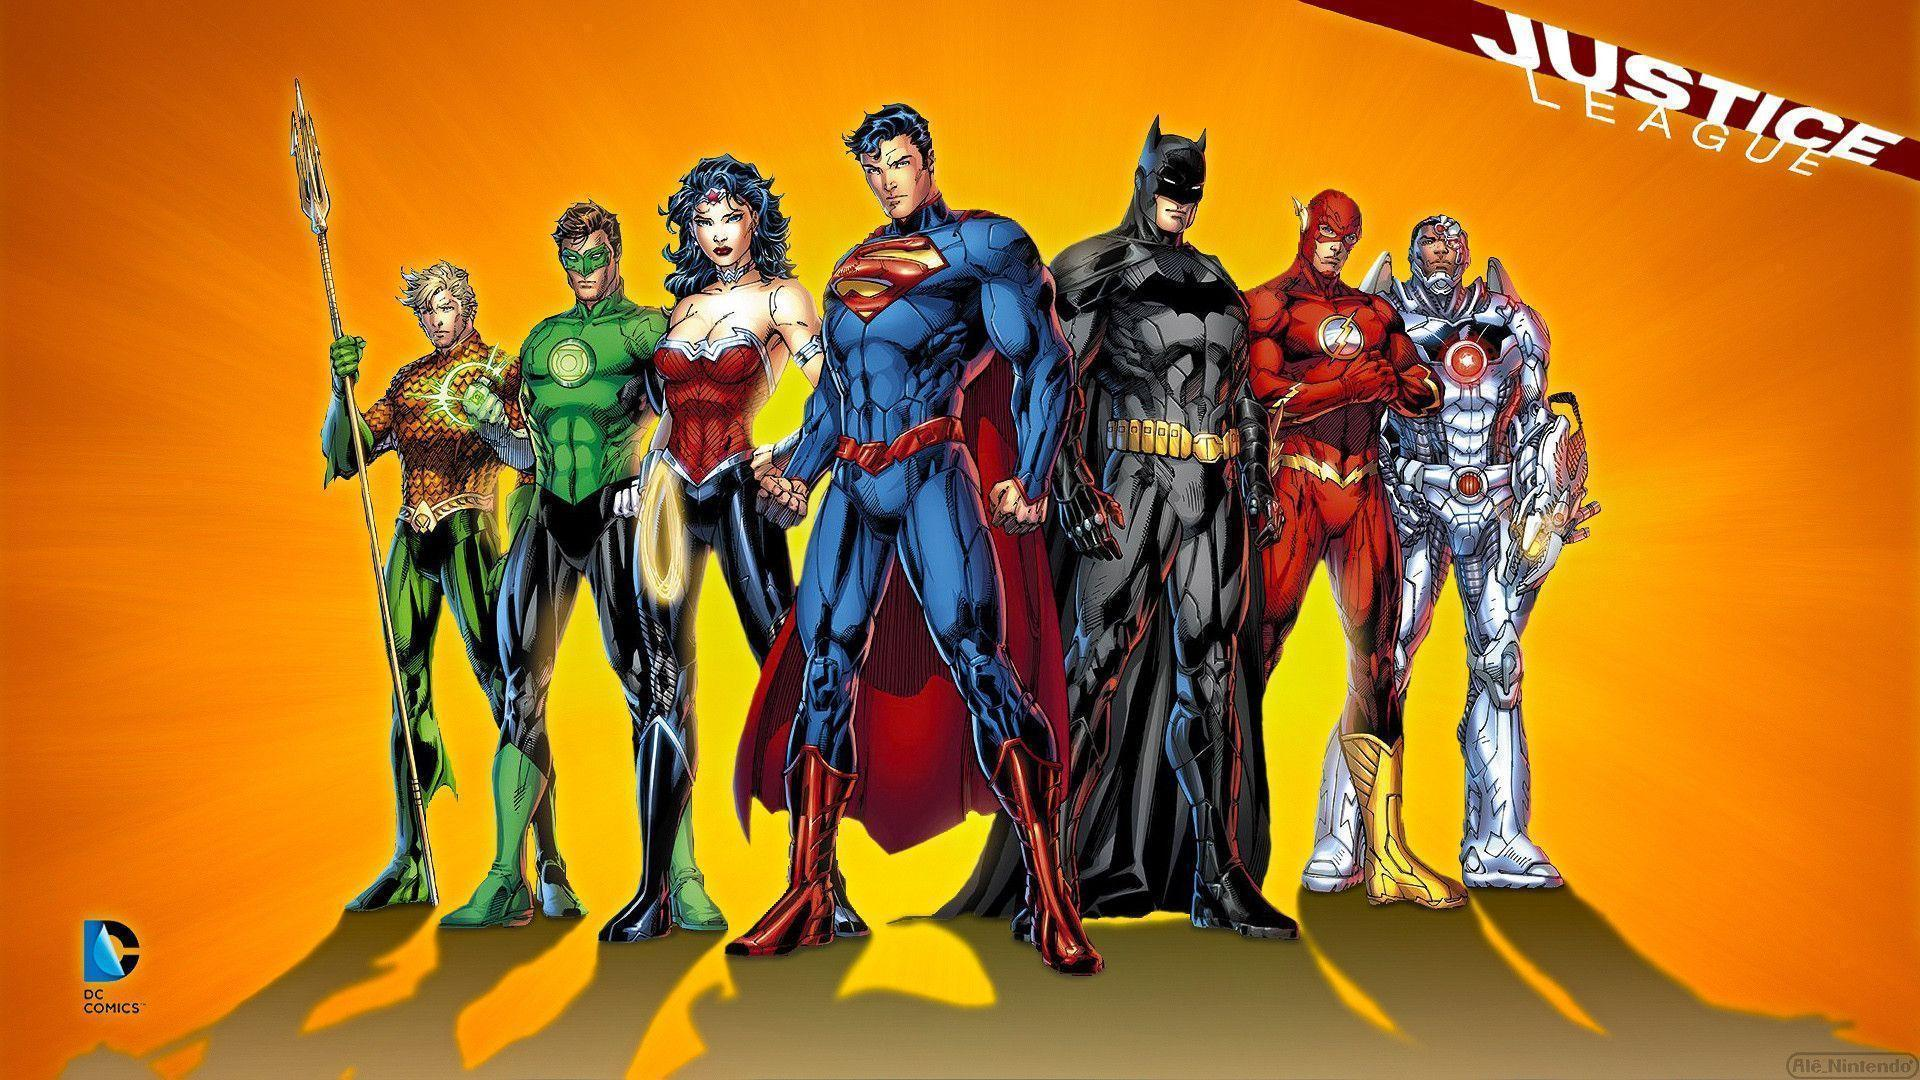 Hd wallpaper justice league - 100 Quality Justice League Hd Wallpapers 1024x576 For Pc Mac